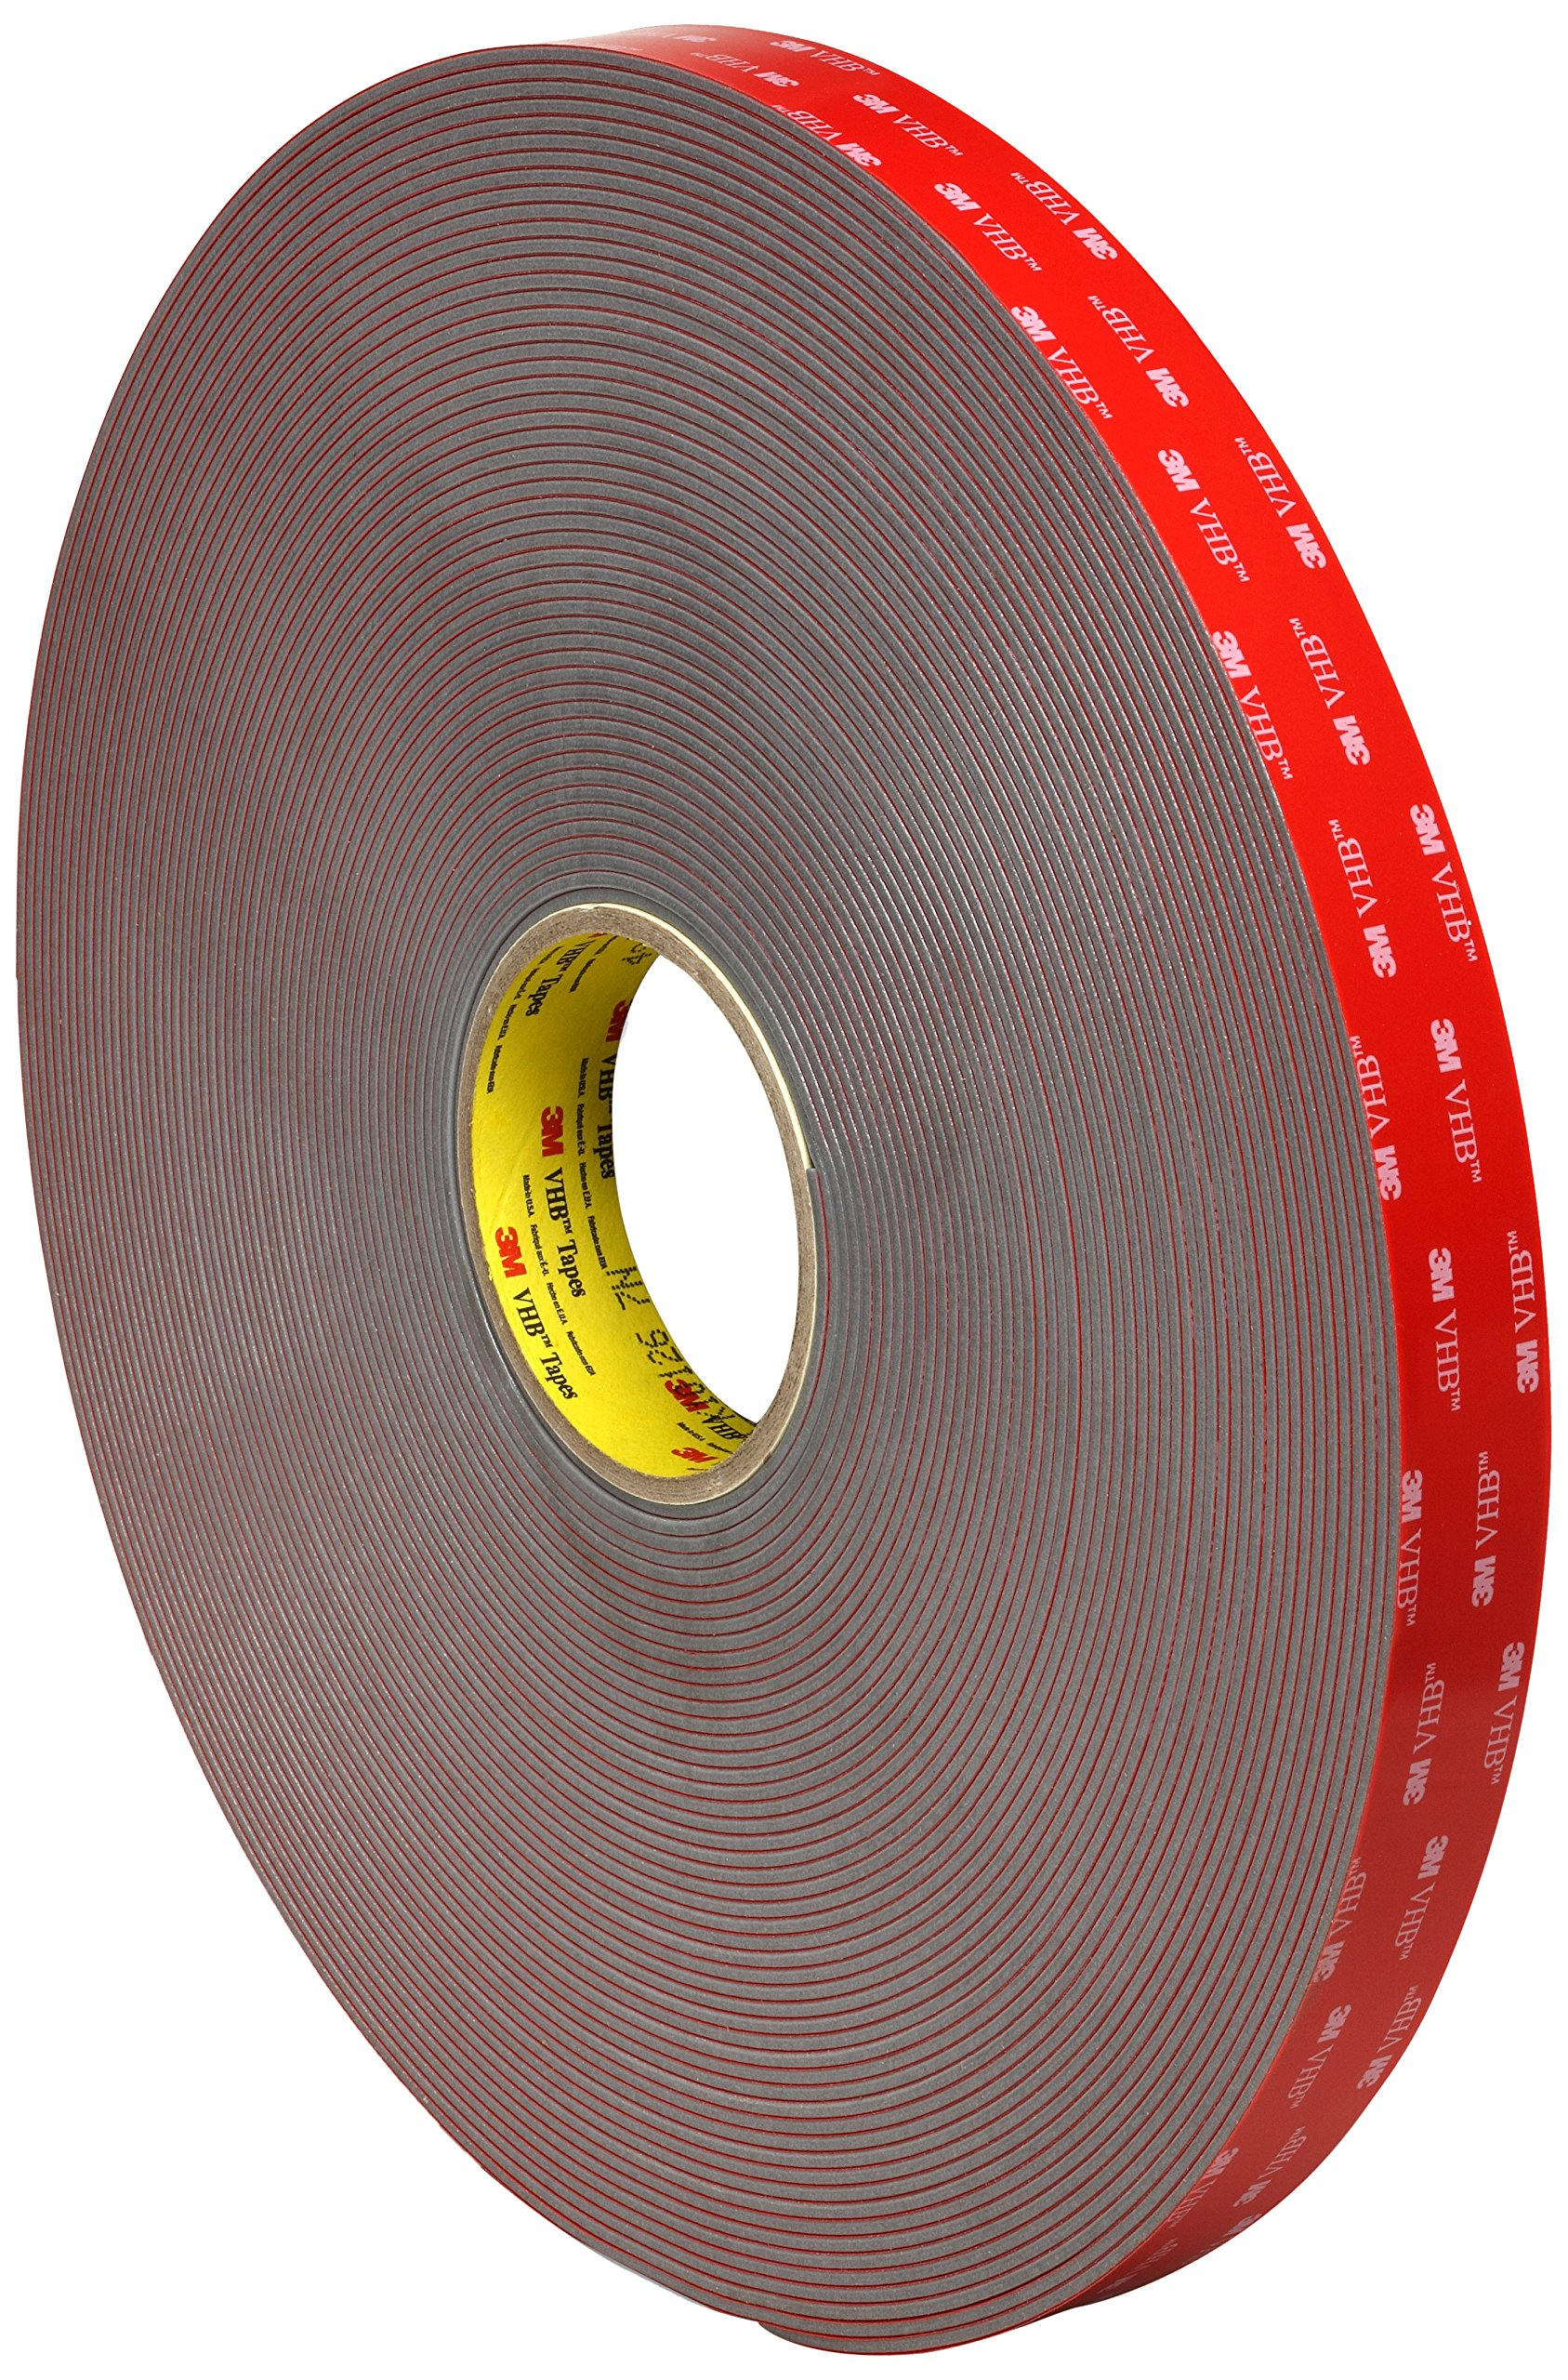 3M VHB Tape 4991, 2 in Width x 10 in Length (Pack of 6)